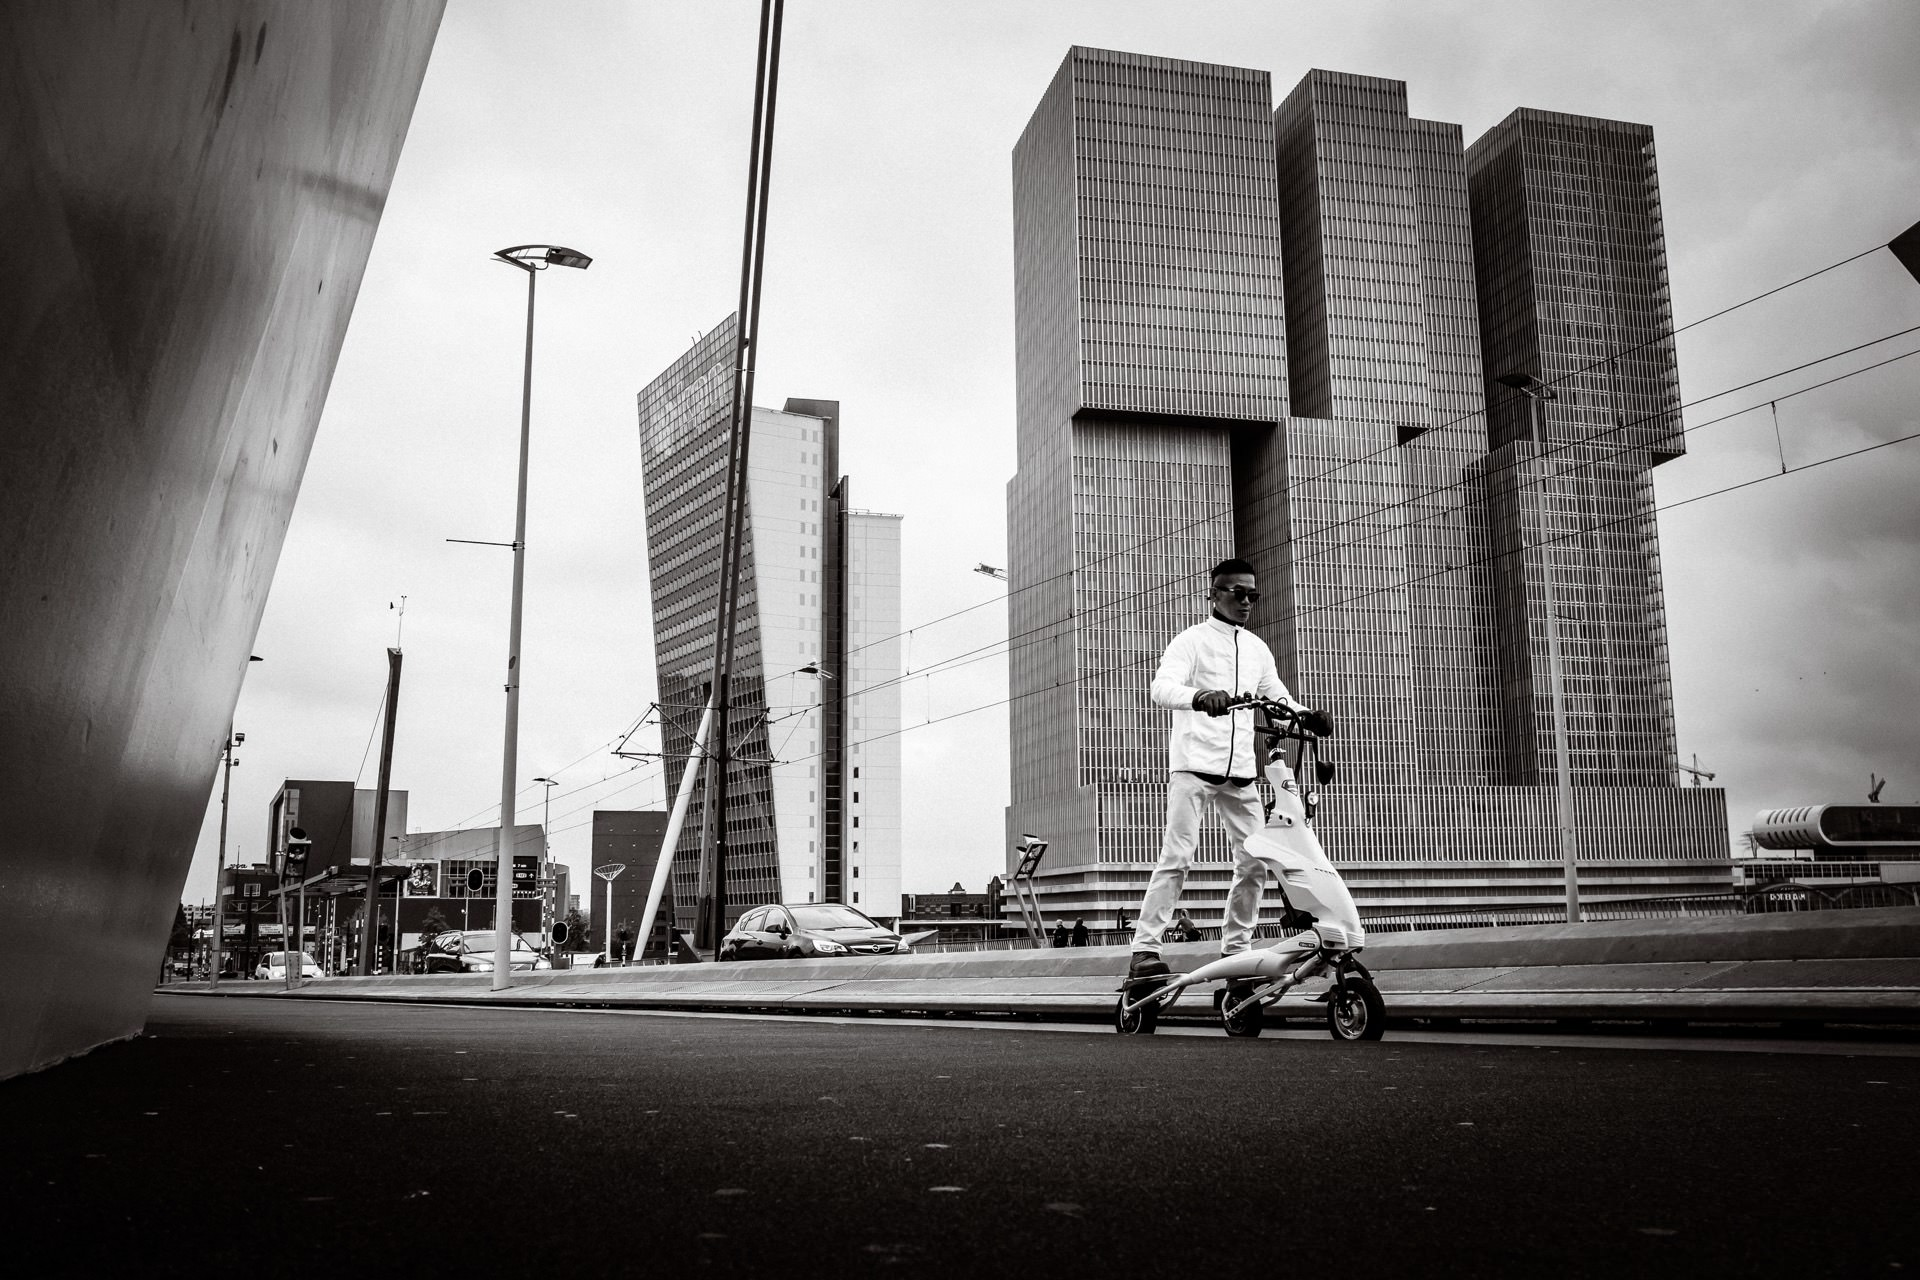 Marco Bollaart  On the move #2